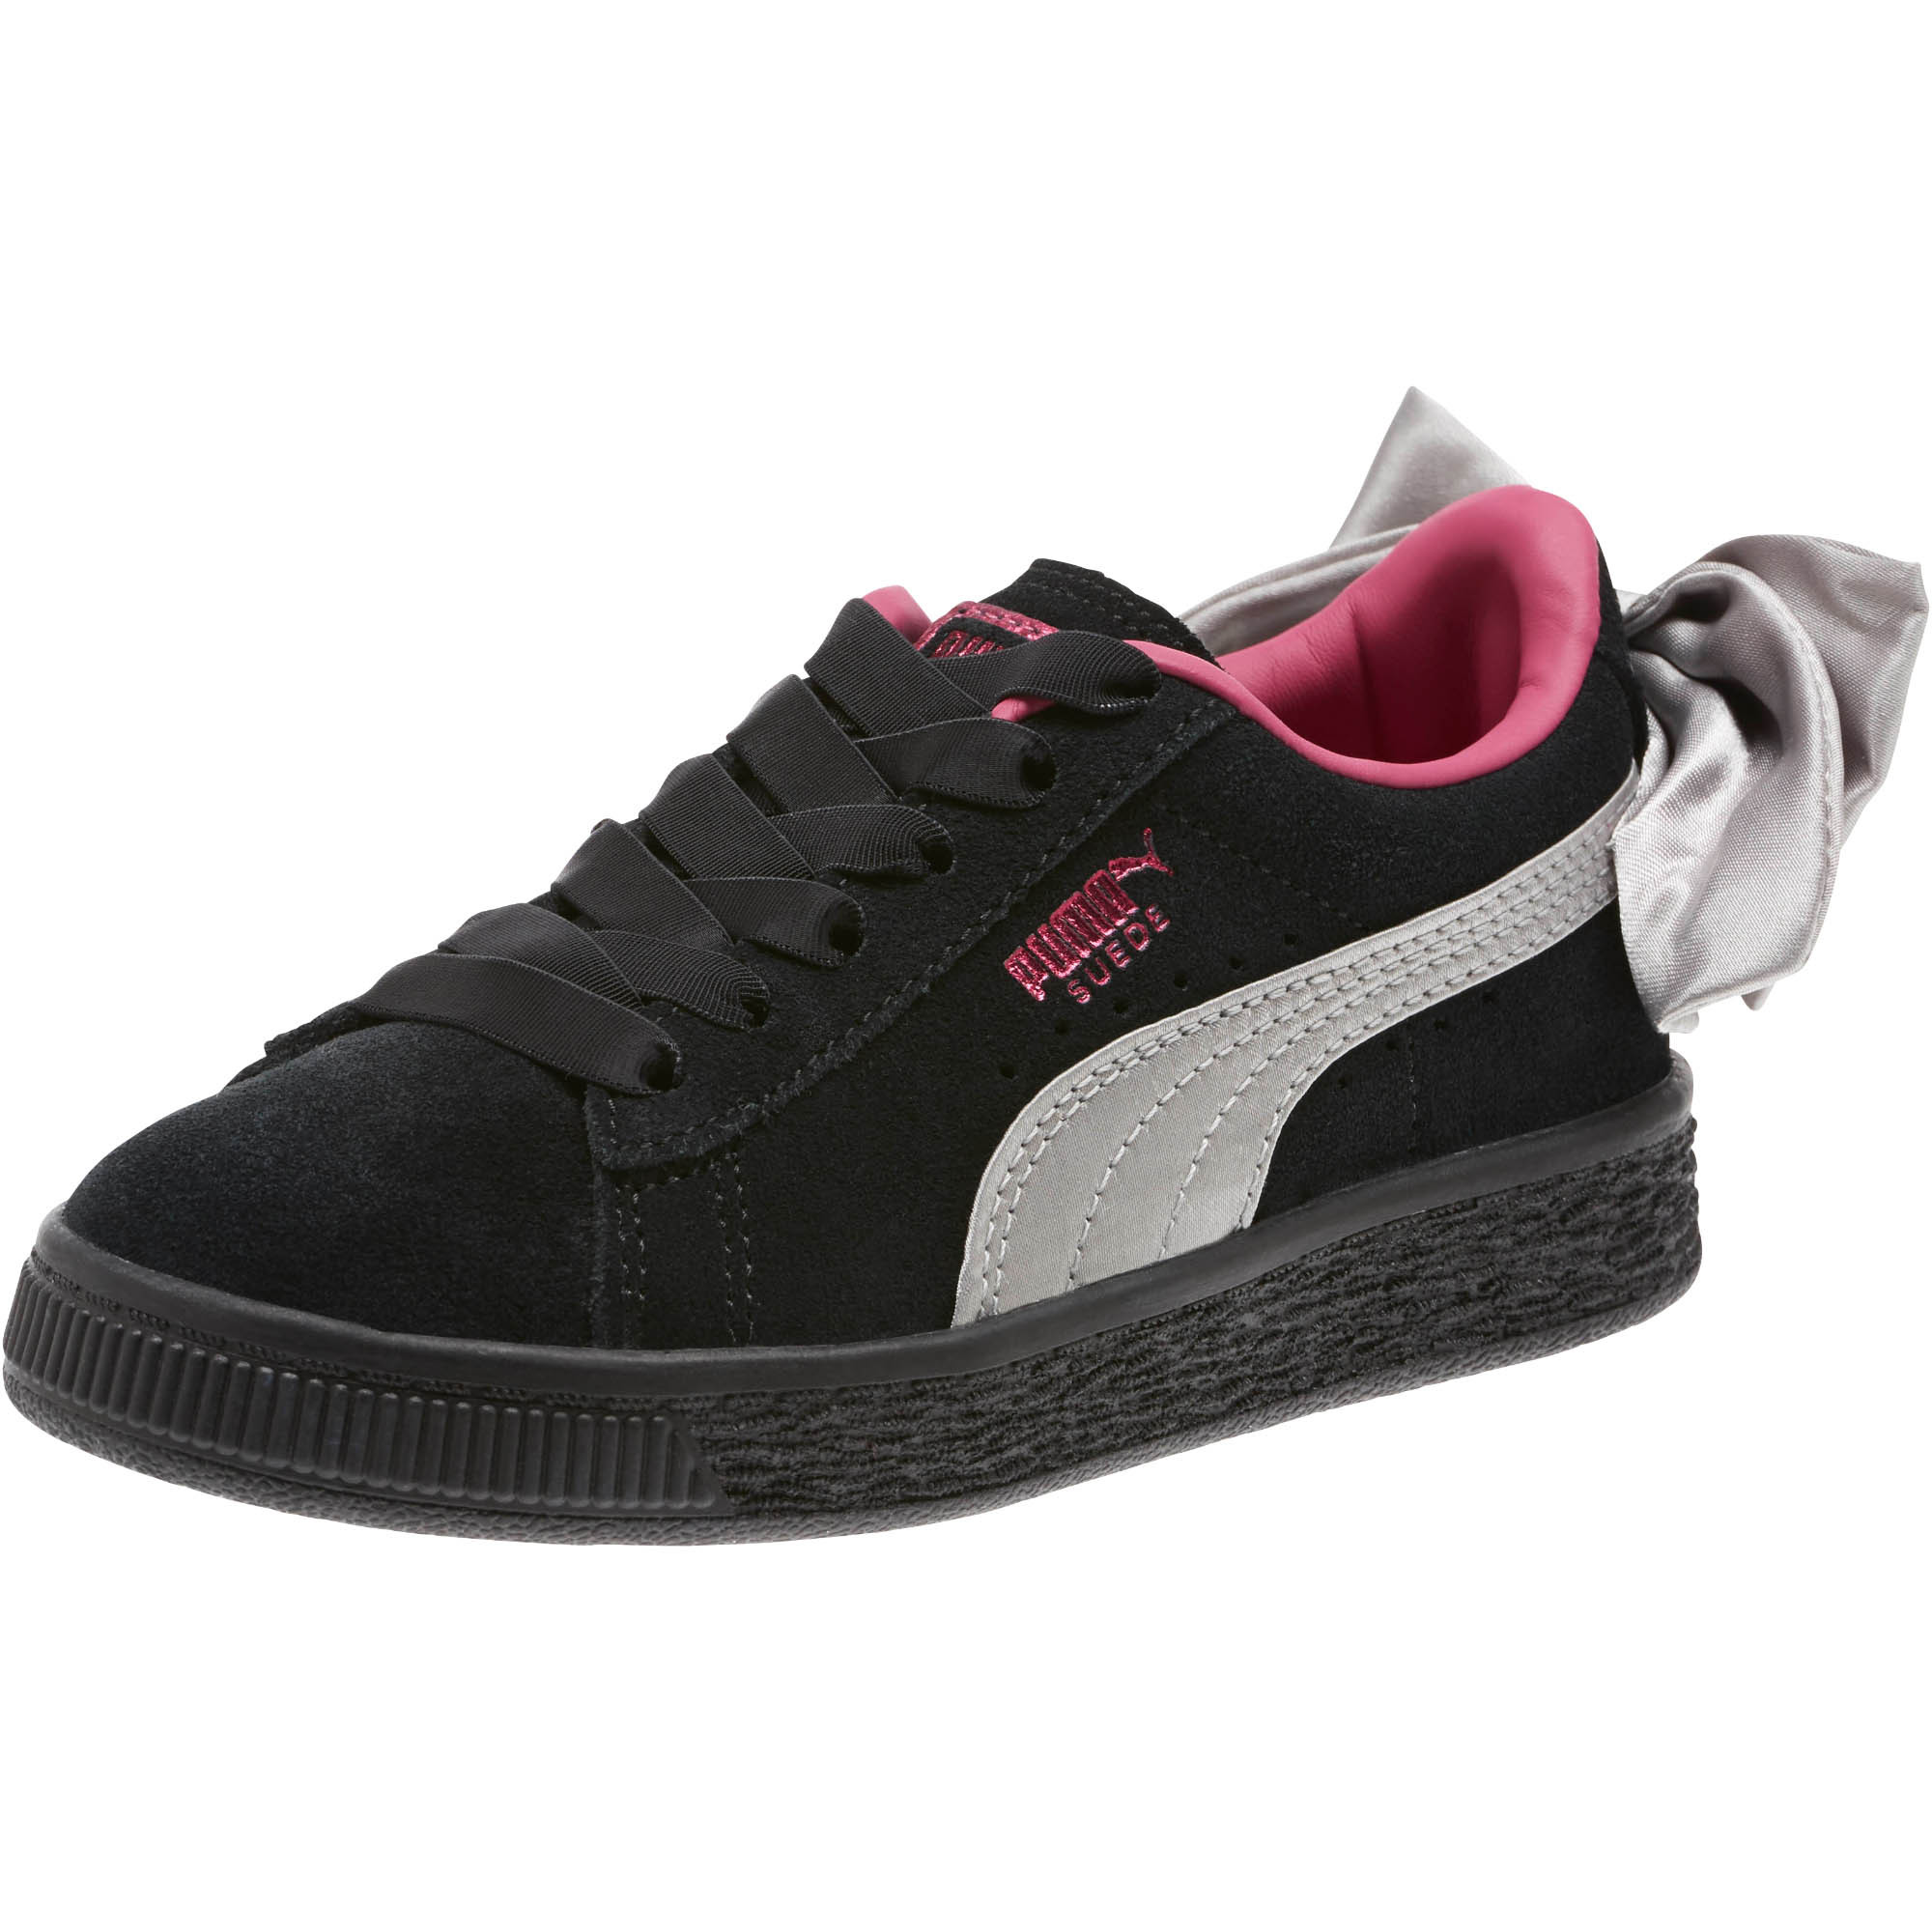 PUMA-Suede-Bow-AC-Little-Kids-039-Shoes-Girls-Shoe-Kids thumbnail 9